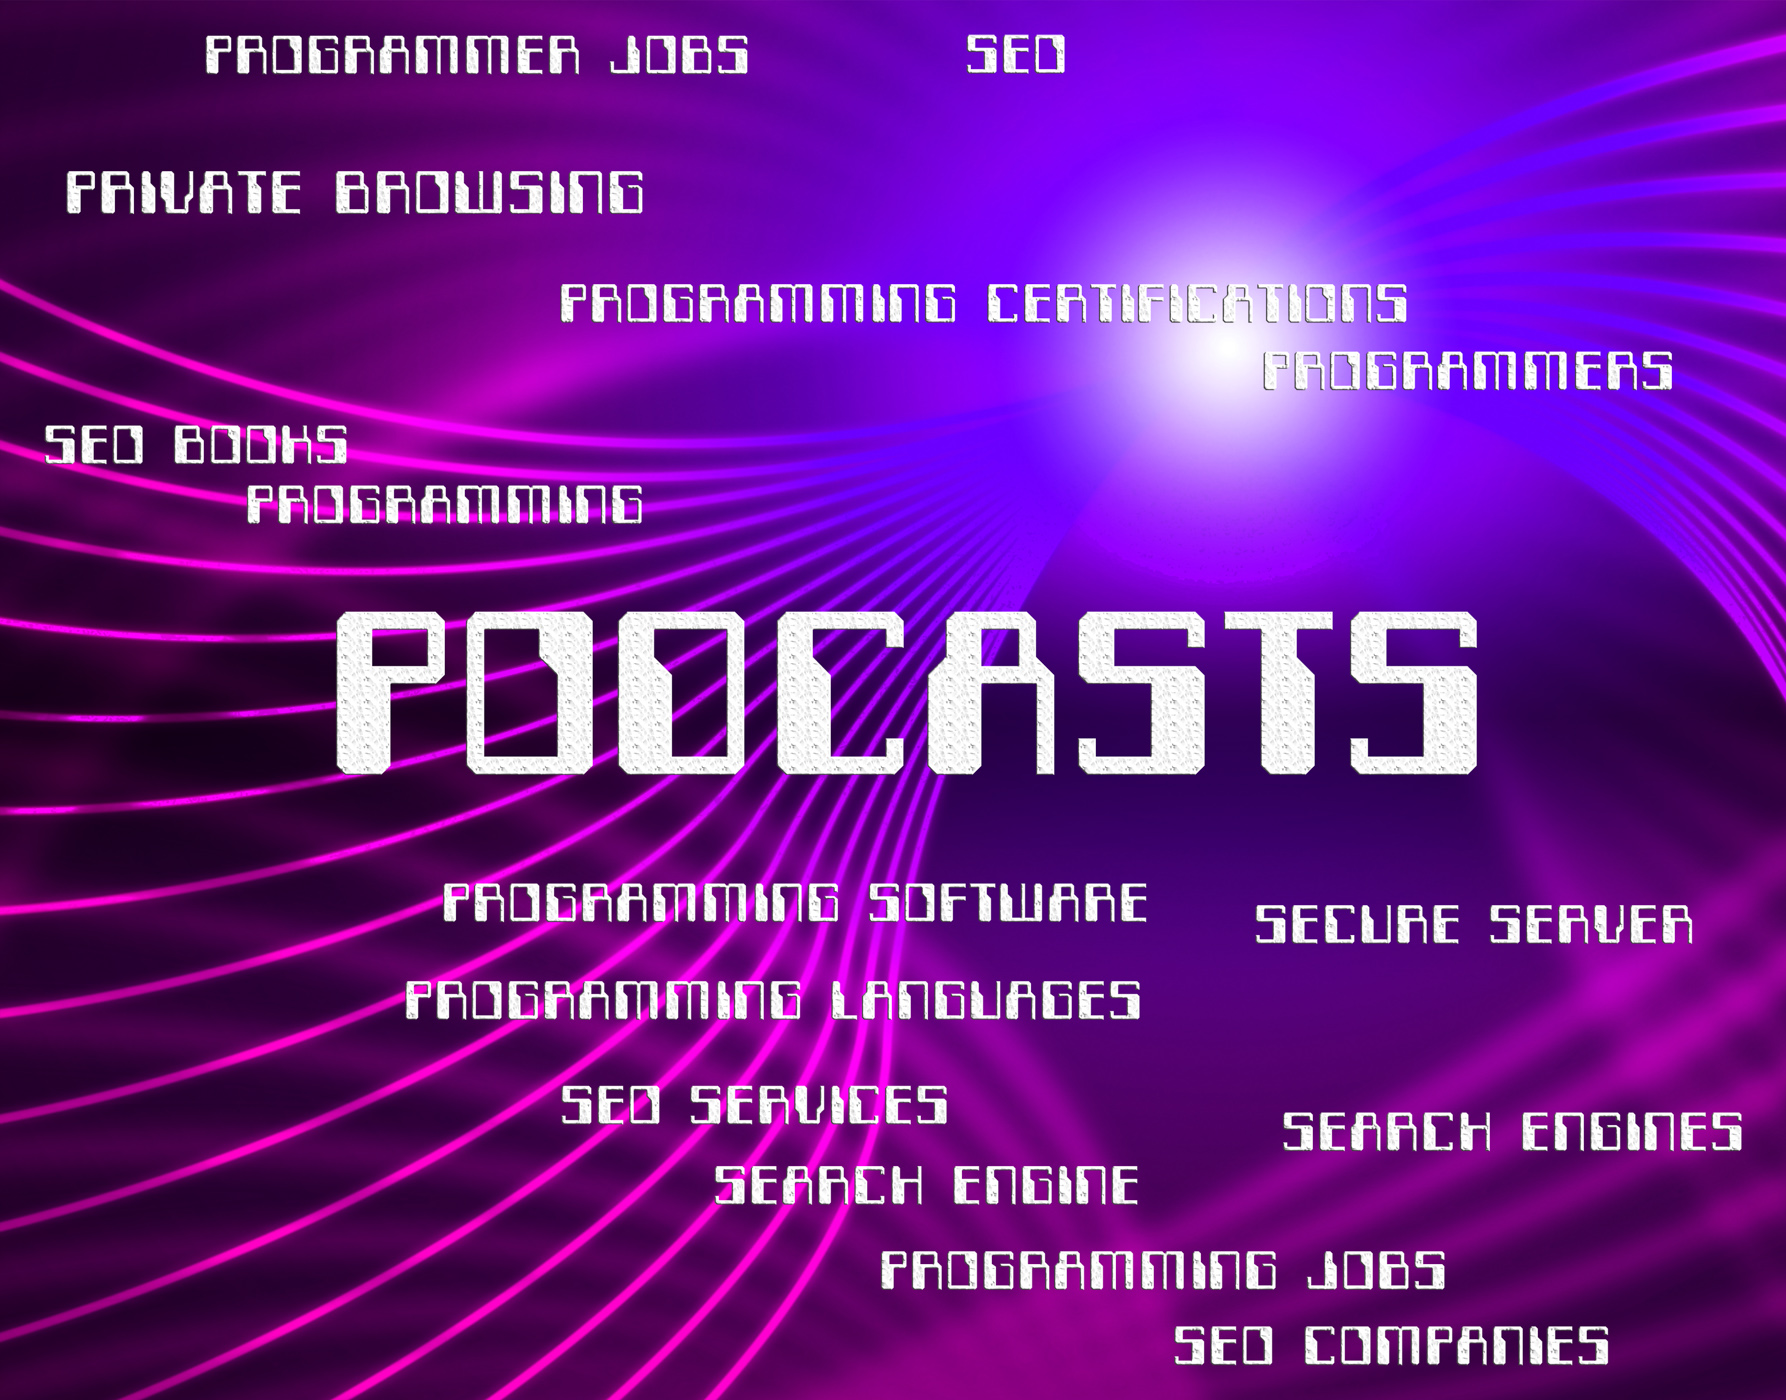 Podcasts Word Shows Broadcasting Audio And Words, Audio, Broadcast, Broadcasting, Broadcasts, HQ Photo